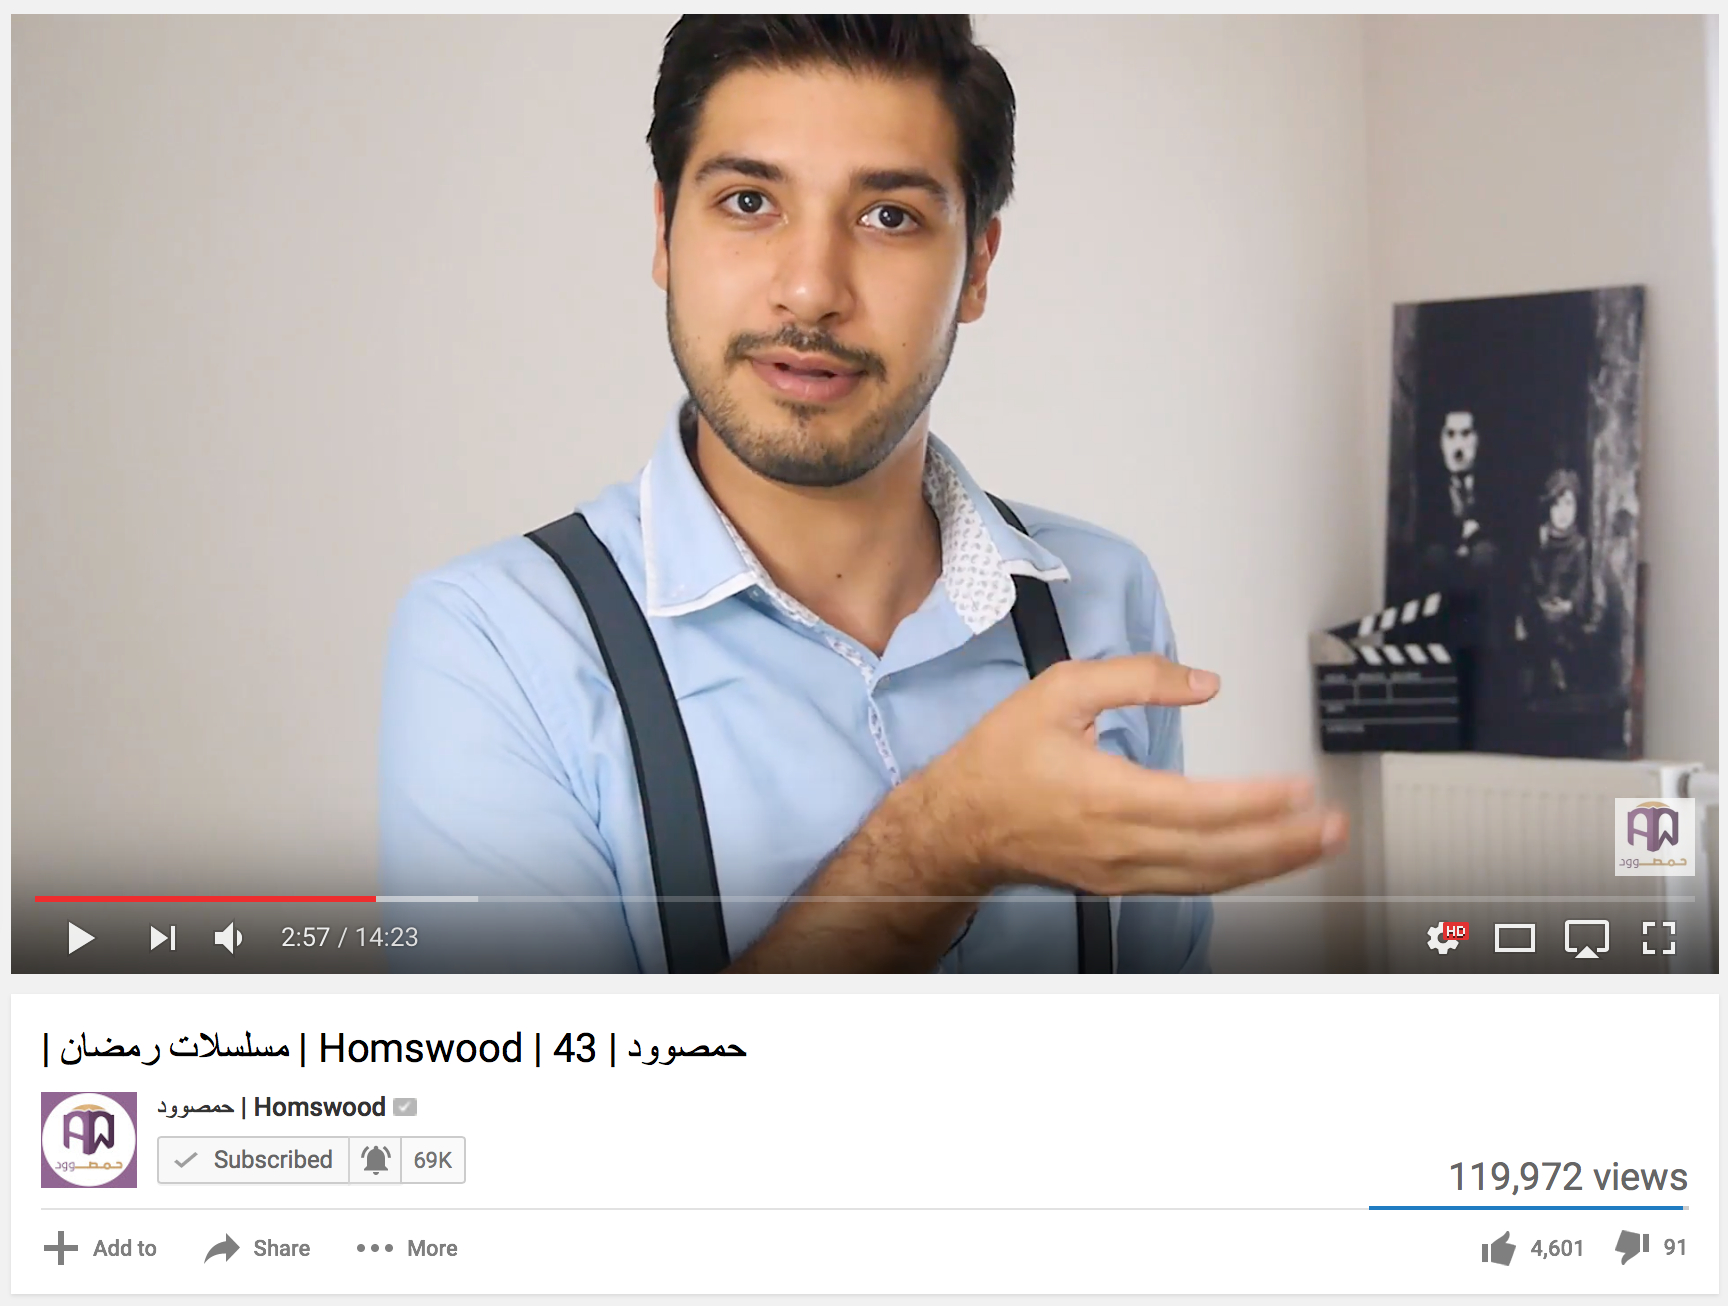 Homswood posted videos more frequently in Ramadan 2016, which is considered peak season for Syrian, Egyptian, and other television serials.